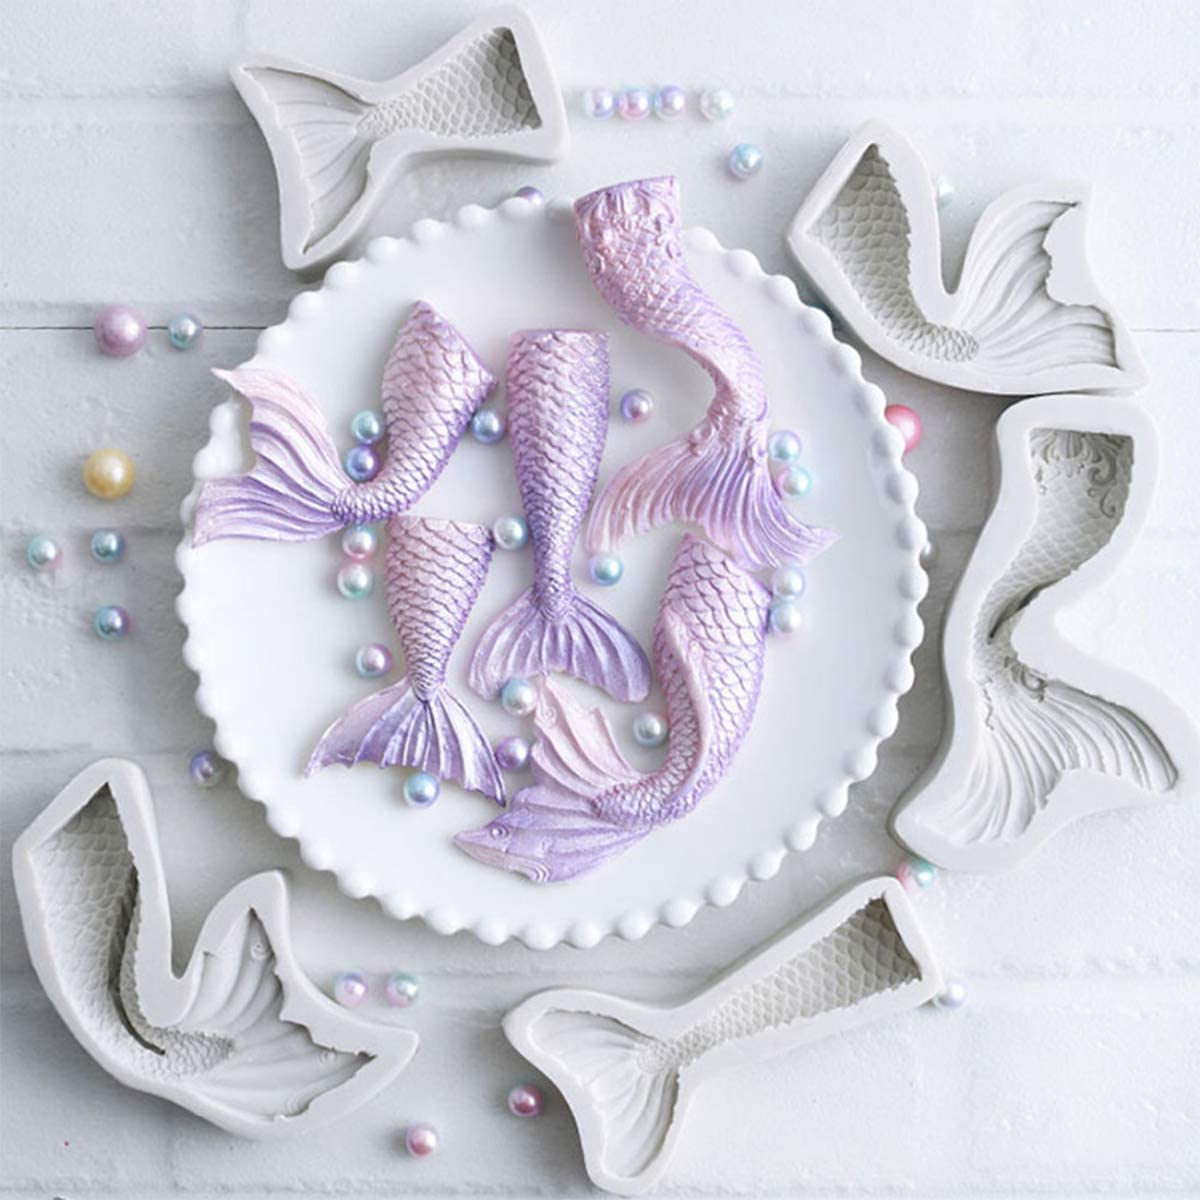 iSuperb 5 Pack Mermaid Tail Silicone Mold, Cake Fondant Mold, for Cake Decoration, Chocolate, Soap, Candy, Jello, Cupcake Topper, Gumpaste, Clay, Ice, DIY Tool